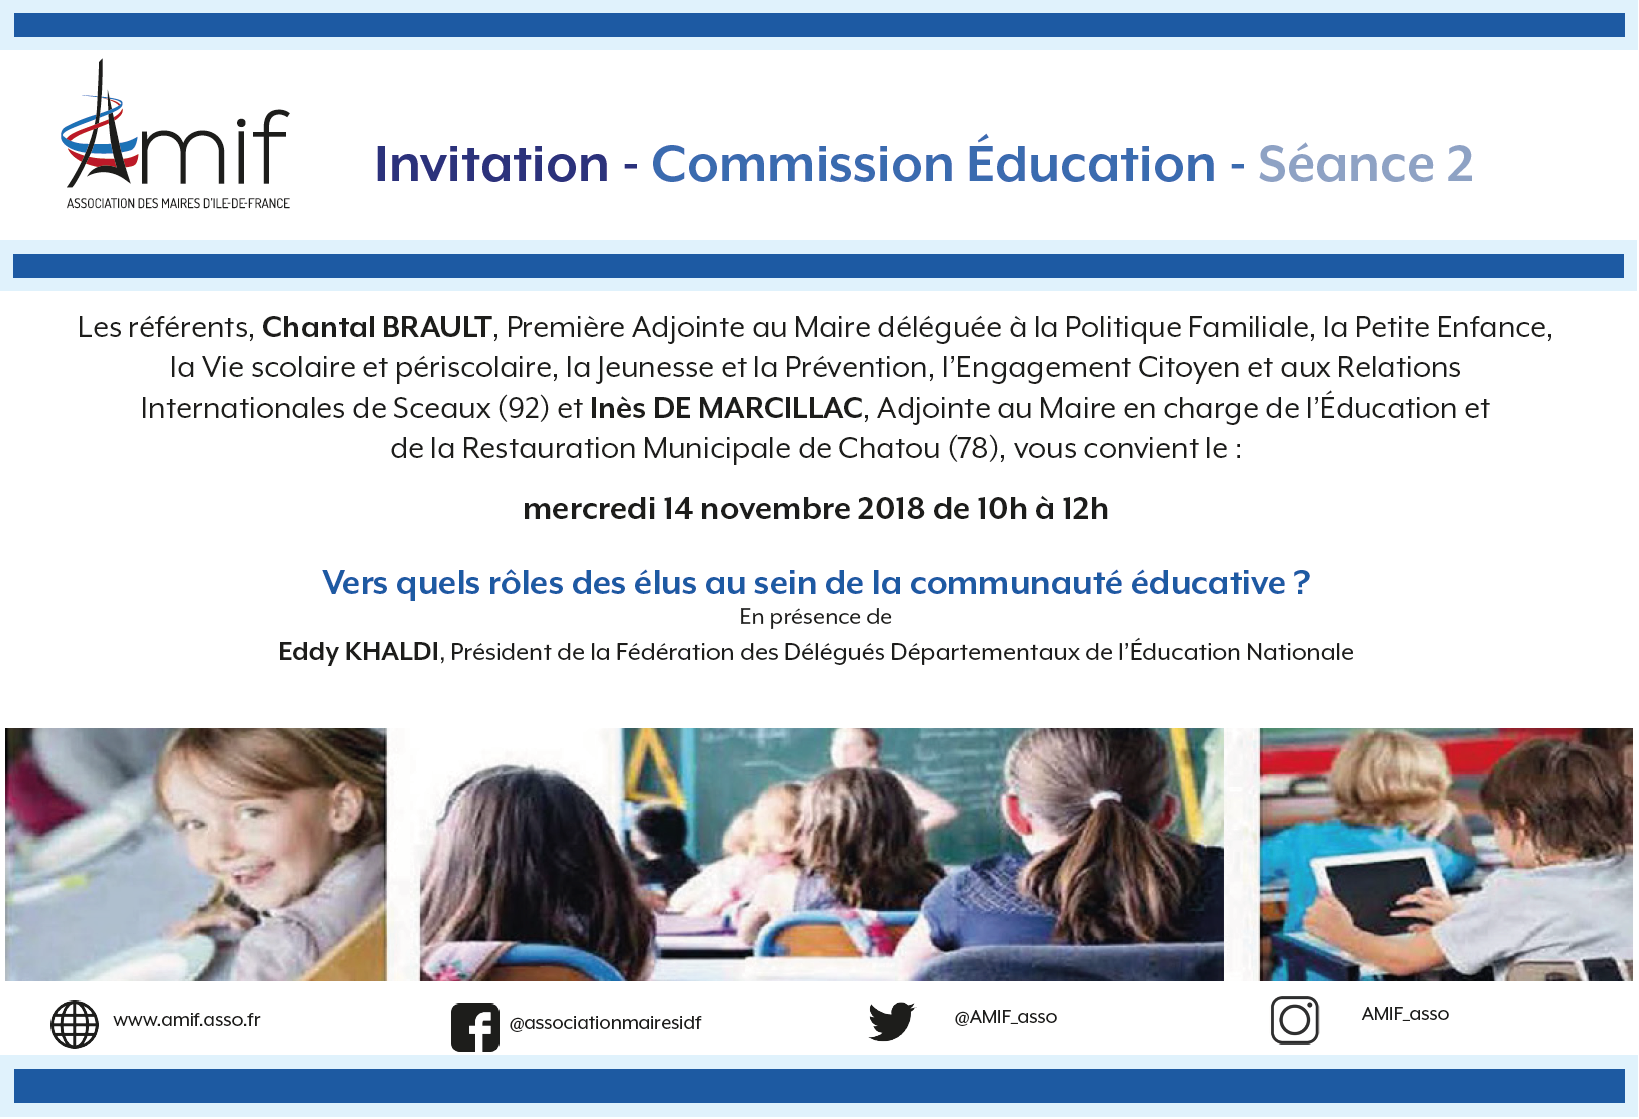 CommissionEducationSeance214novembre2018v5